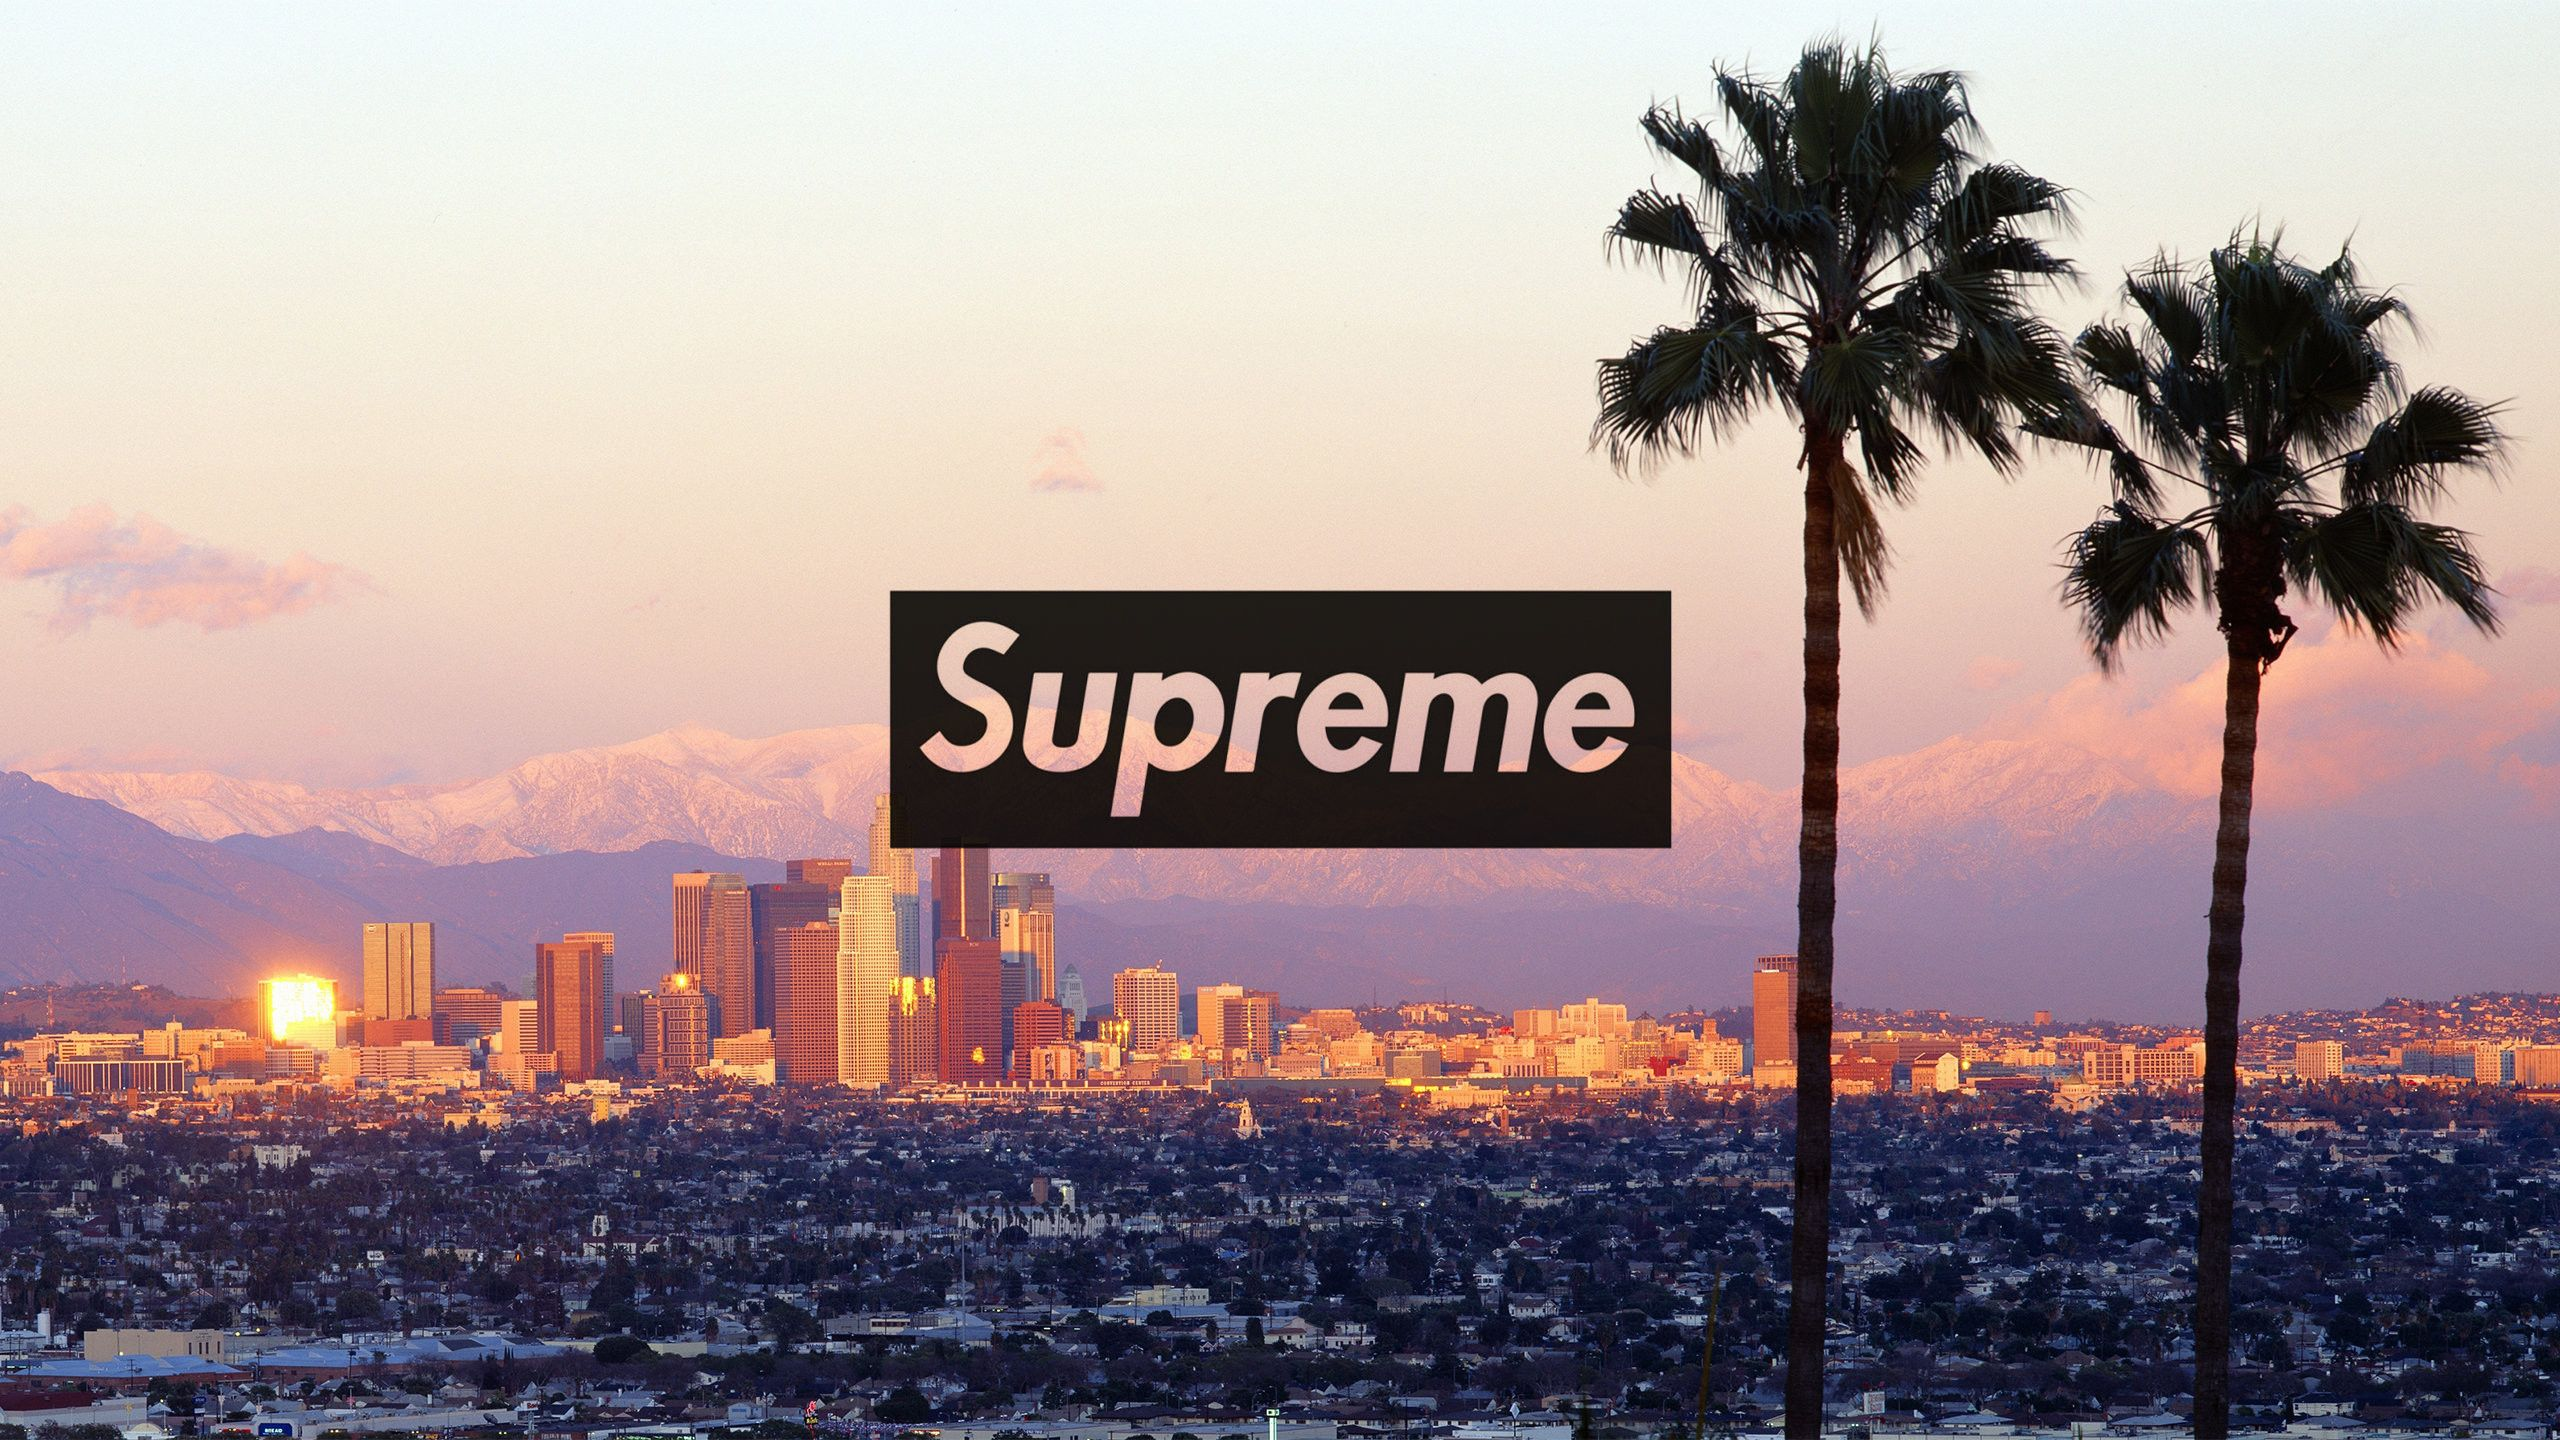 2560x1440 Download The Los Angeles Supreme Wallpaper Below For Your Mobile Dev Supreme Wallpaper Computer Wallpaper Desktop Wallpapers Supreme Iphone Wallpaper